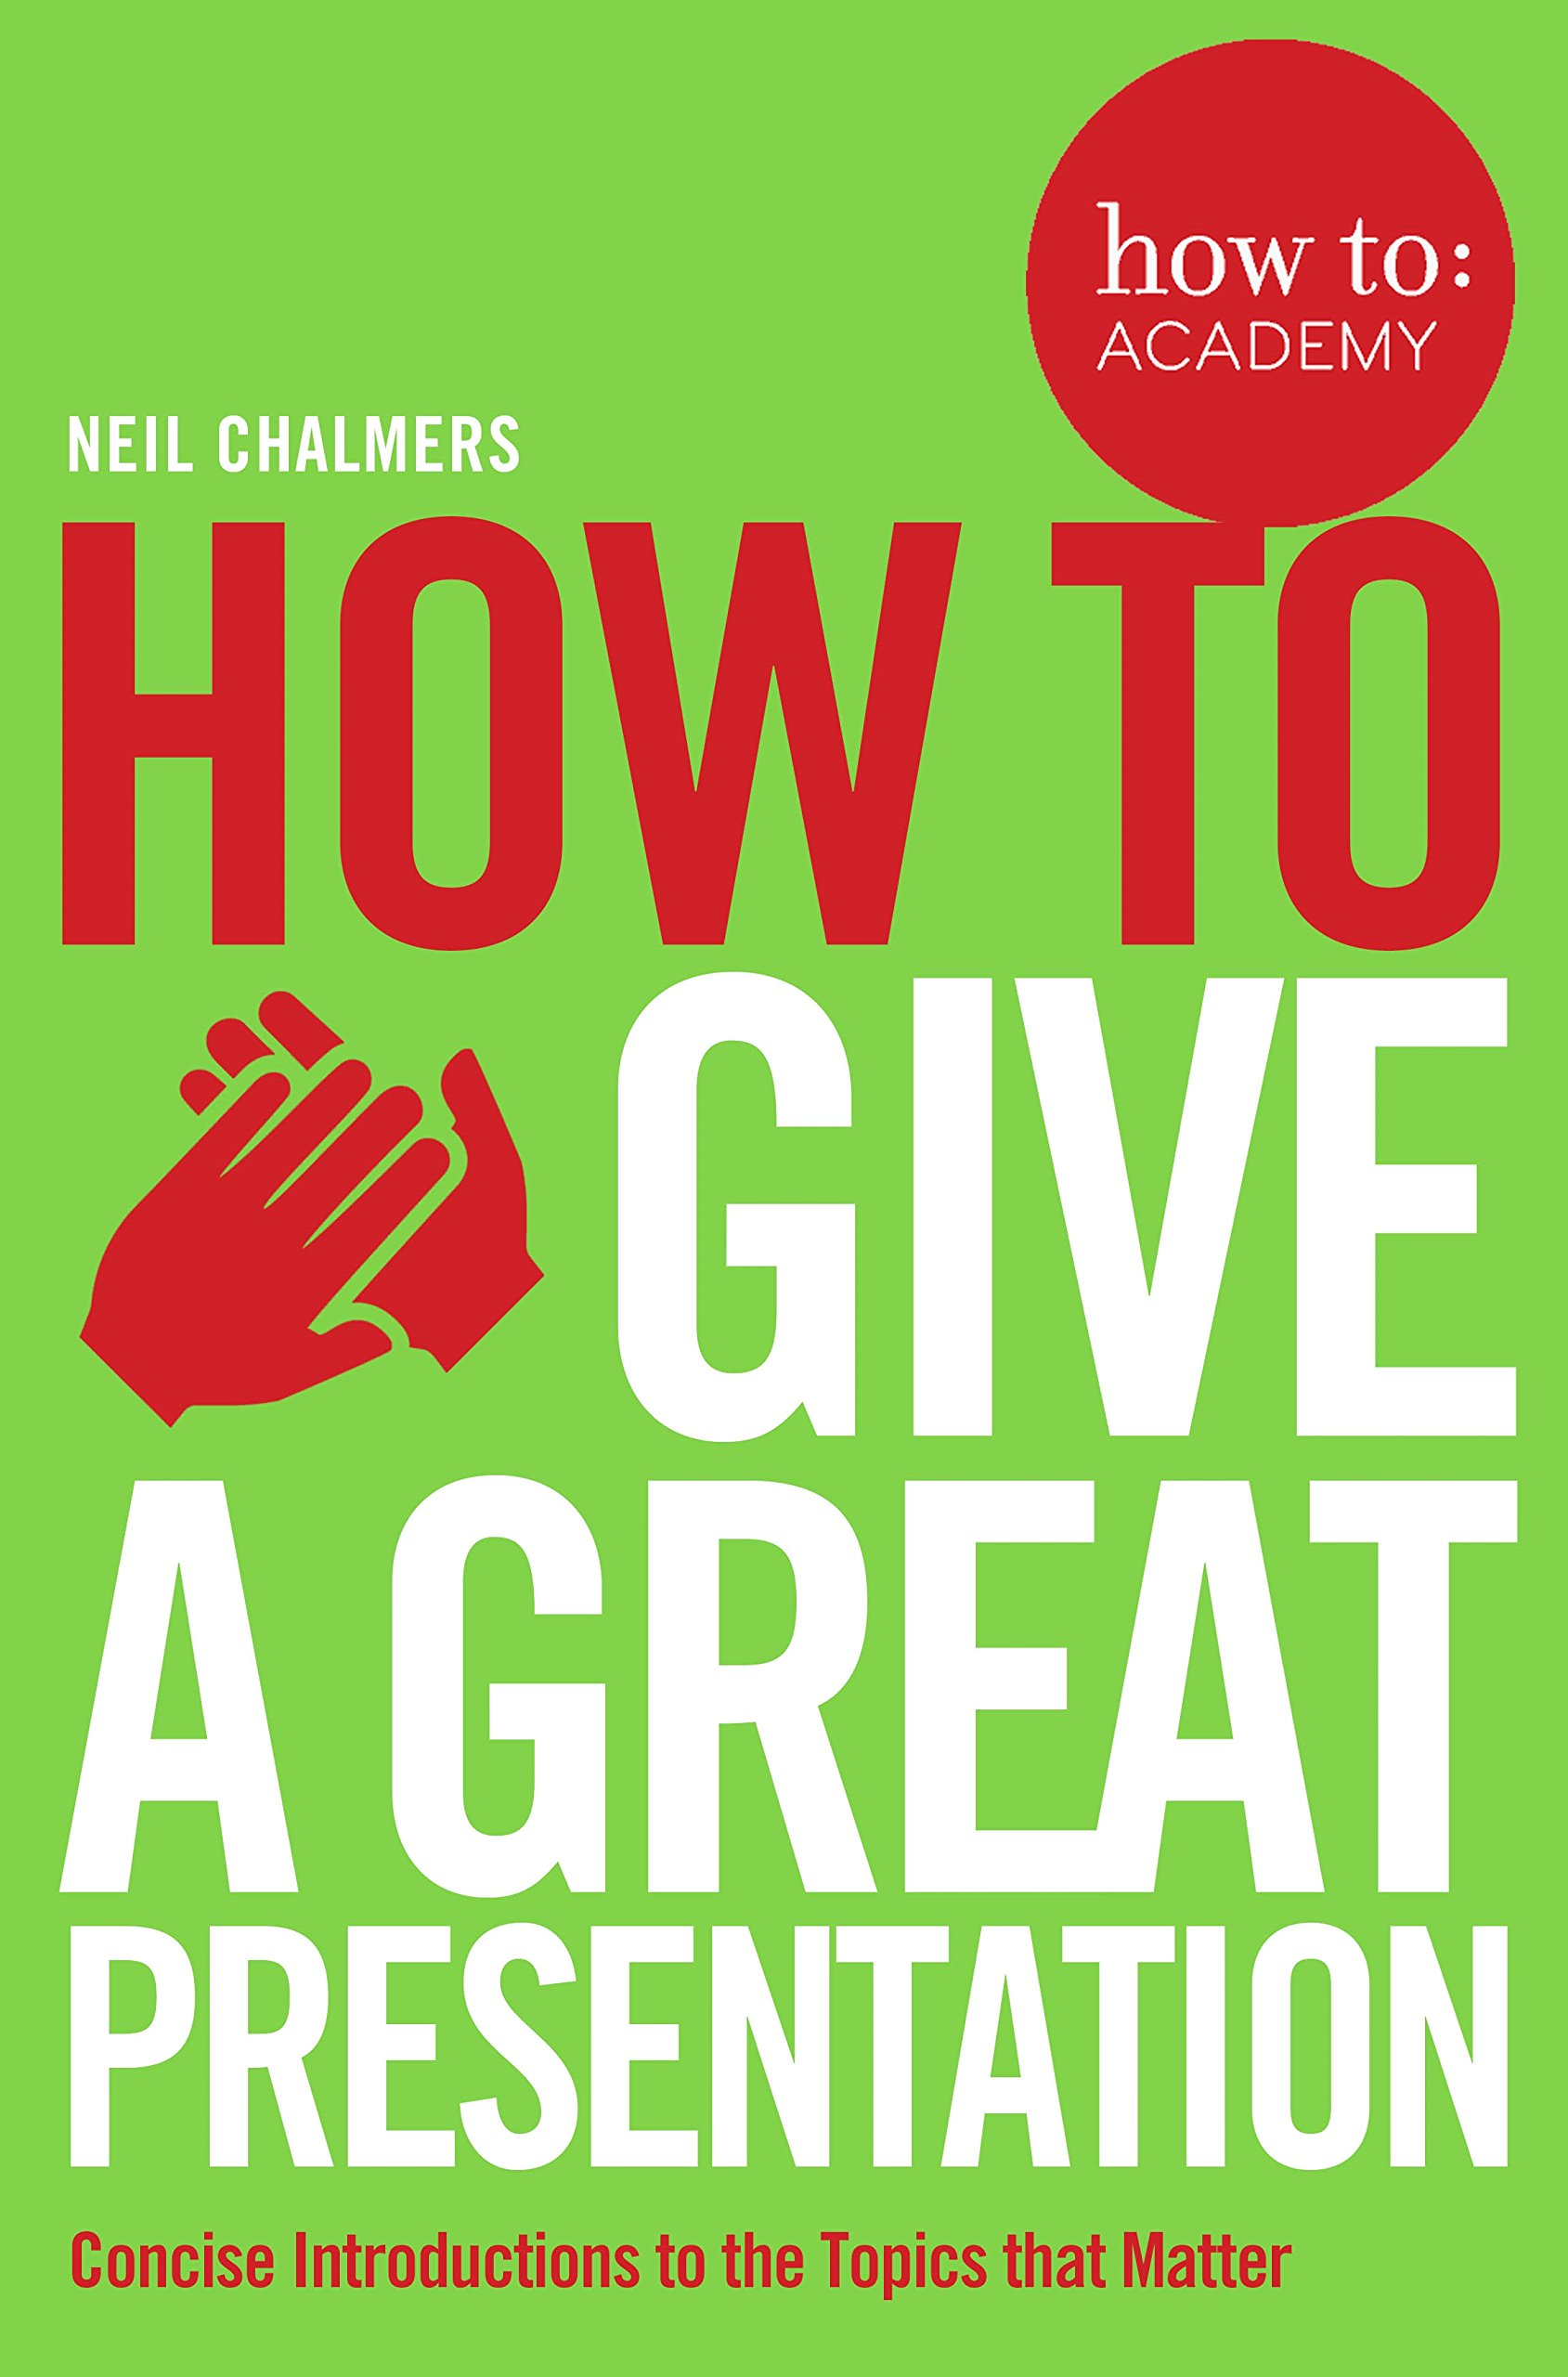 how to give a great presentation how to academy amazon co uk how to give a great presentation how to academy amazon co uk neil chalmers 9781509814473 books